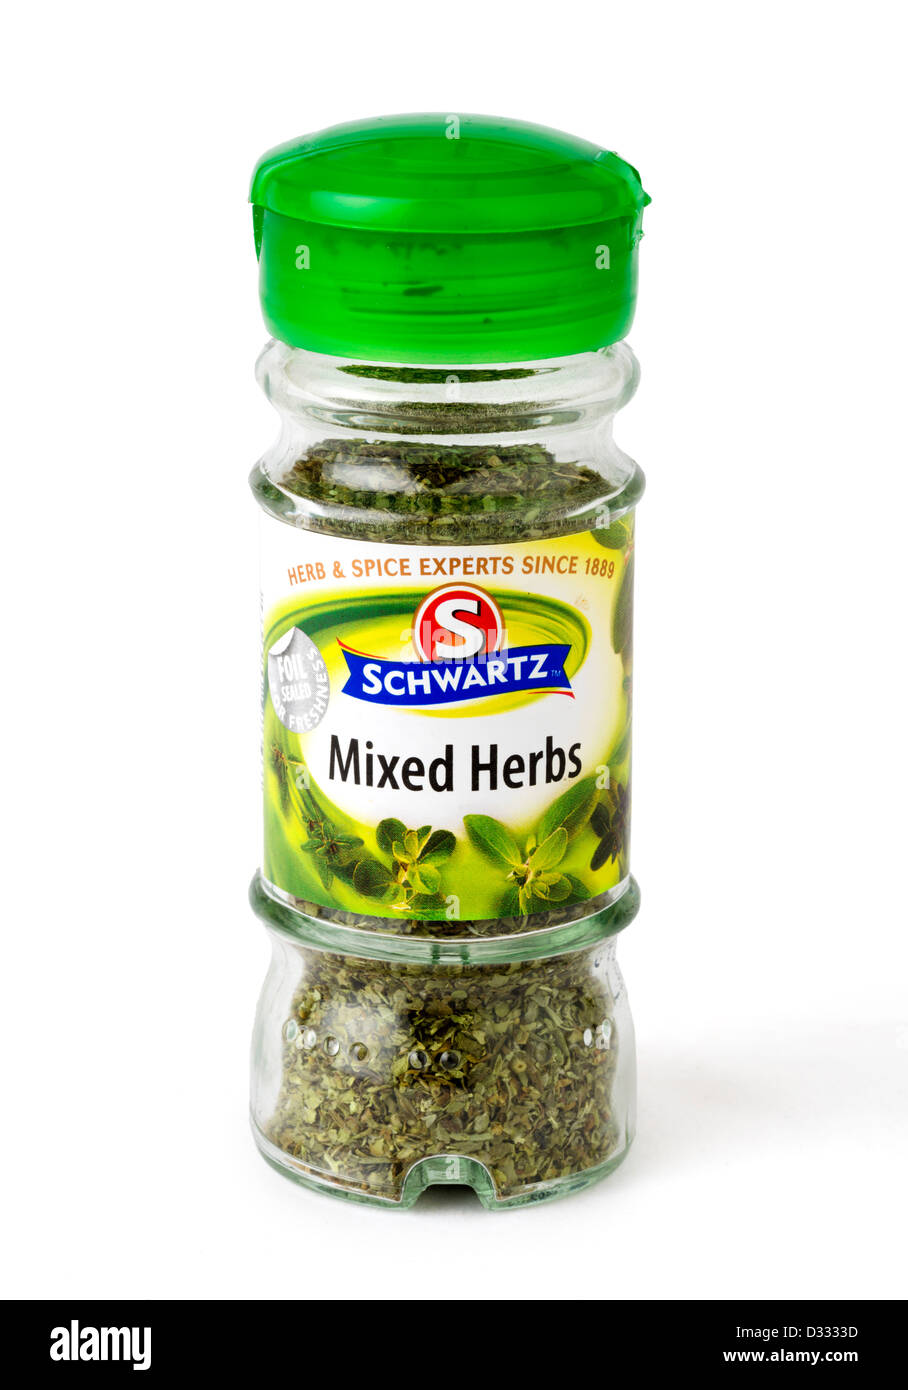 Jar of Schwartz Mixed Herbs, UK - Stock Image